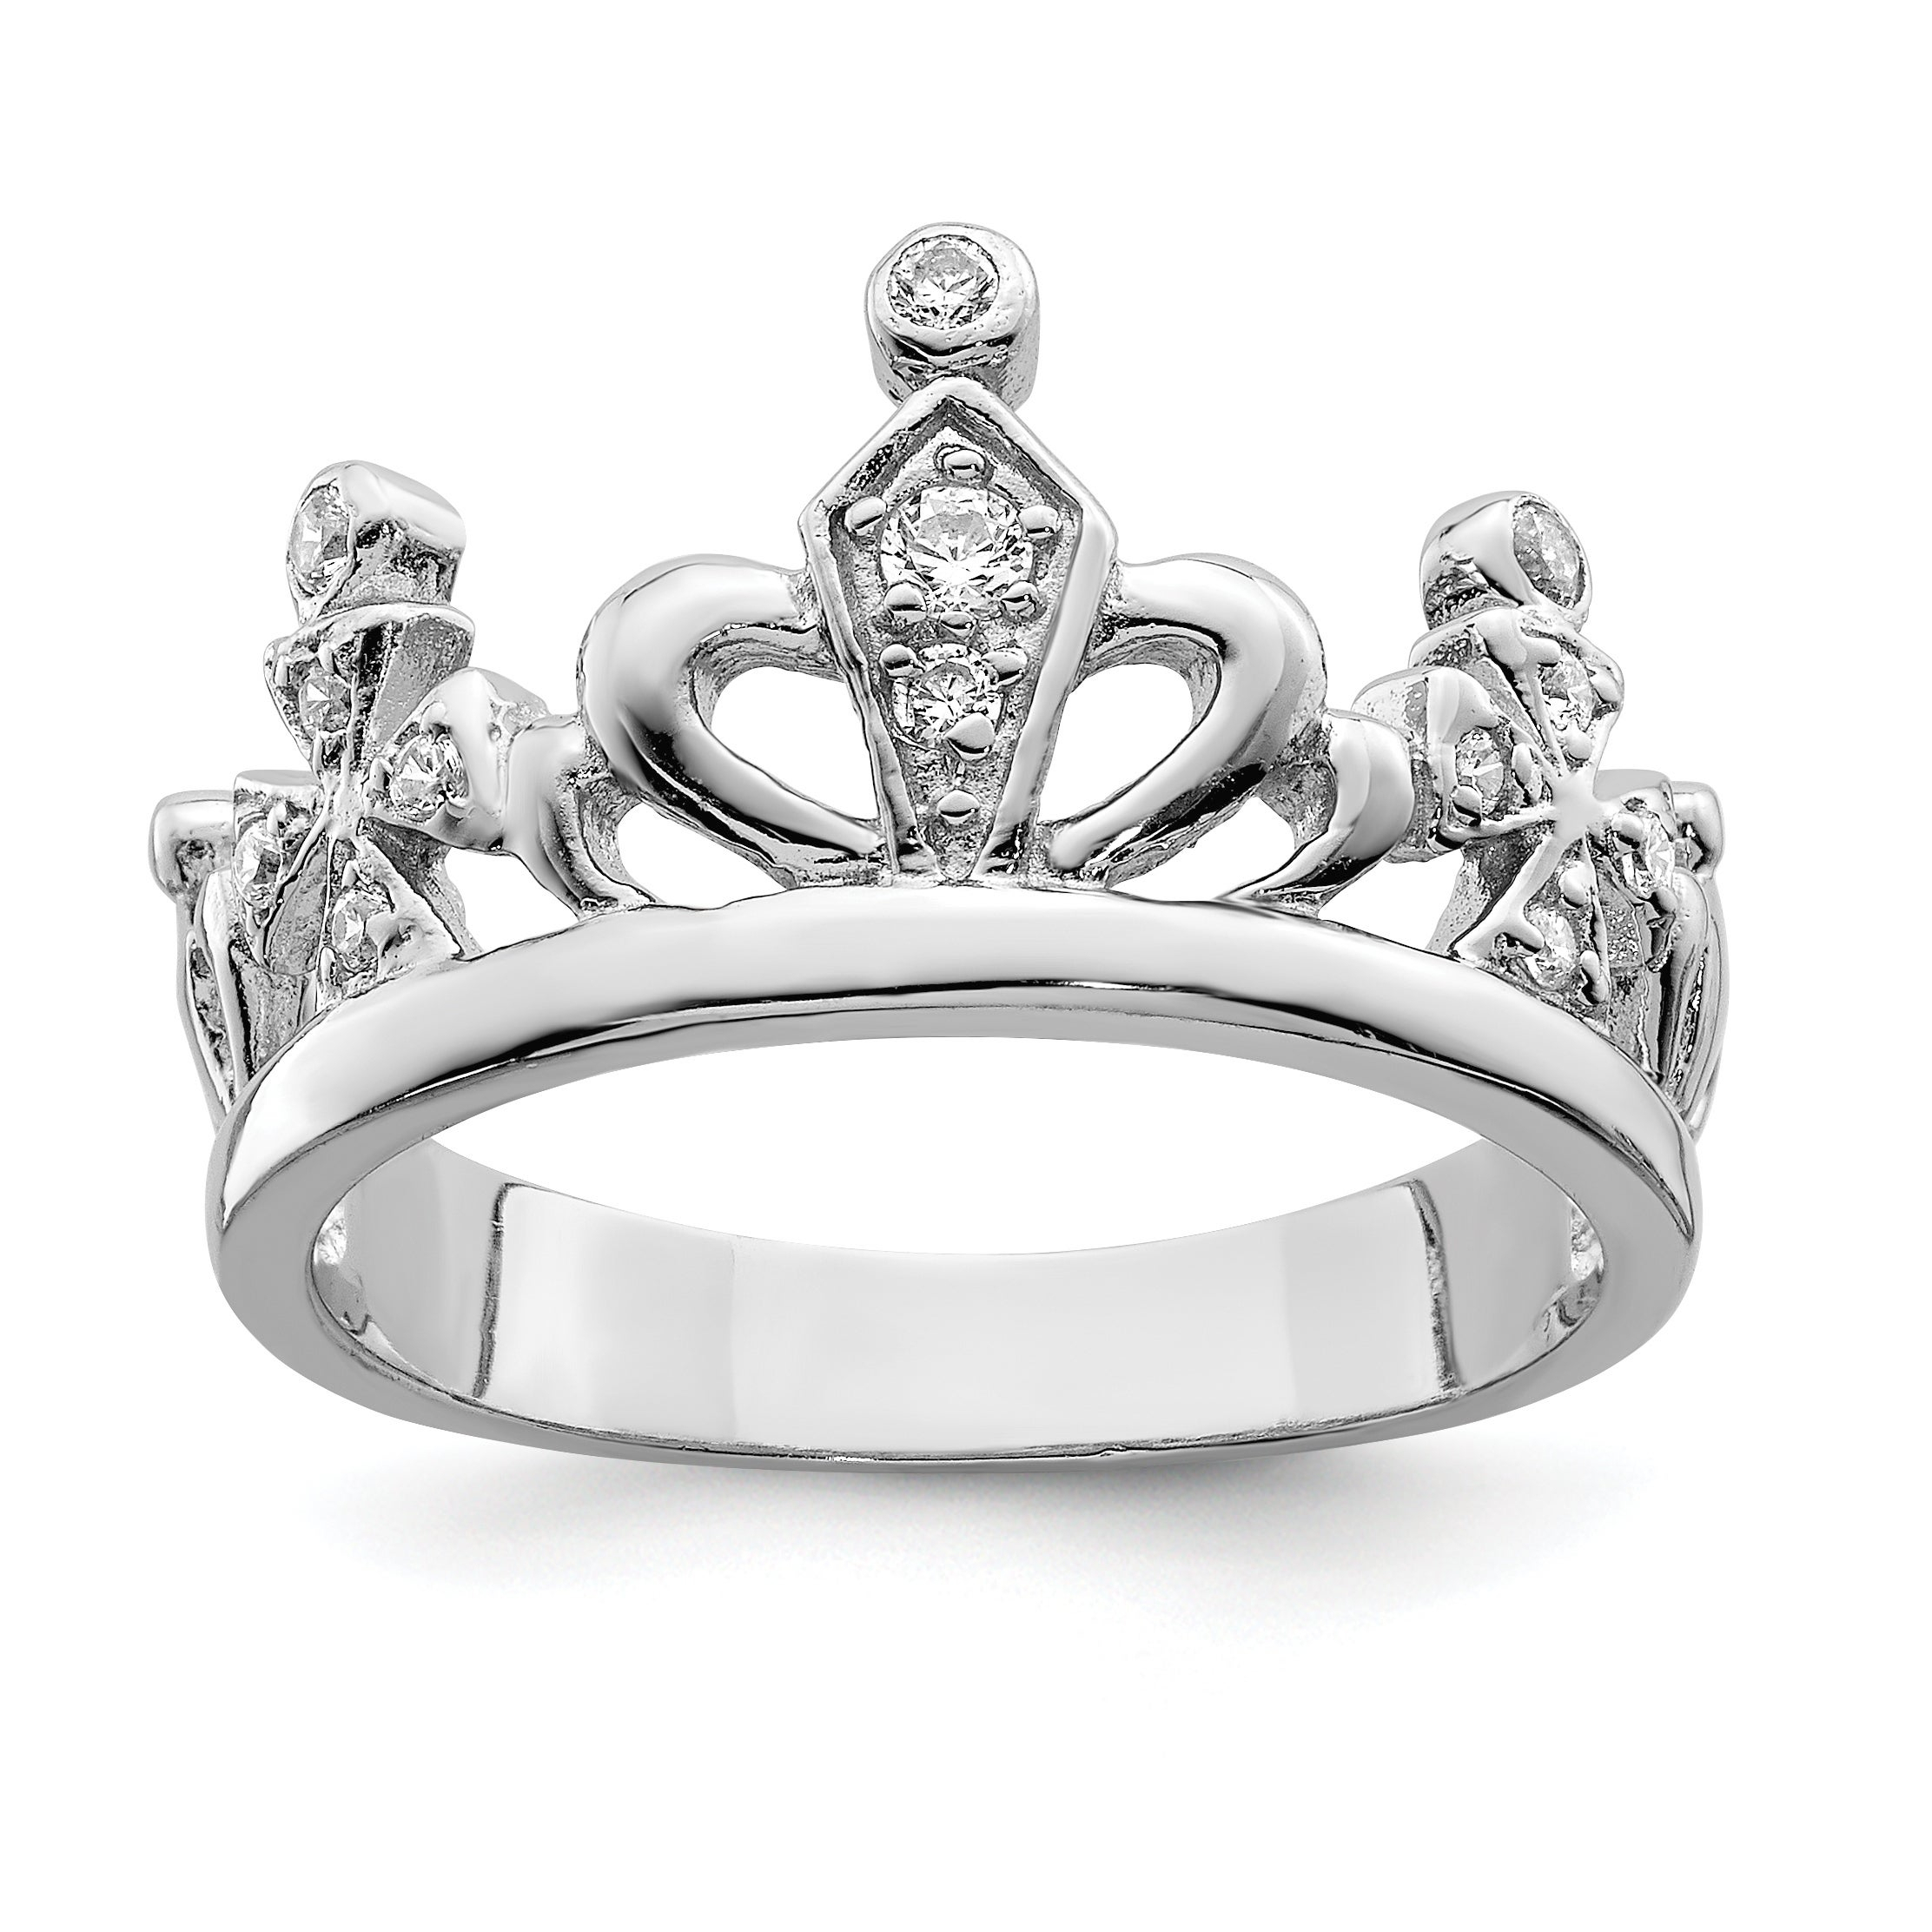 Versil Sterling Silver Cz Crown Ring With Most Current Black Sparkling Crown Rings (View 10 of 25)